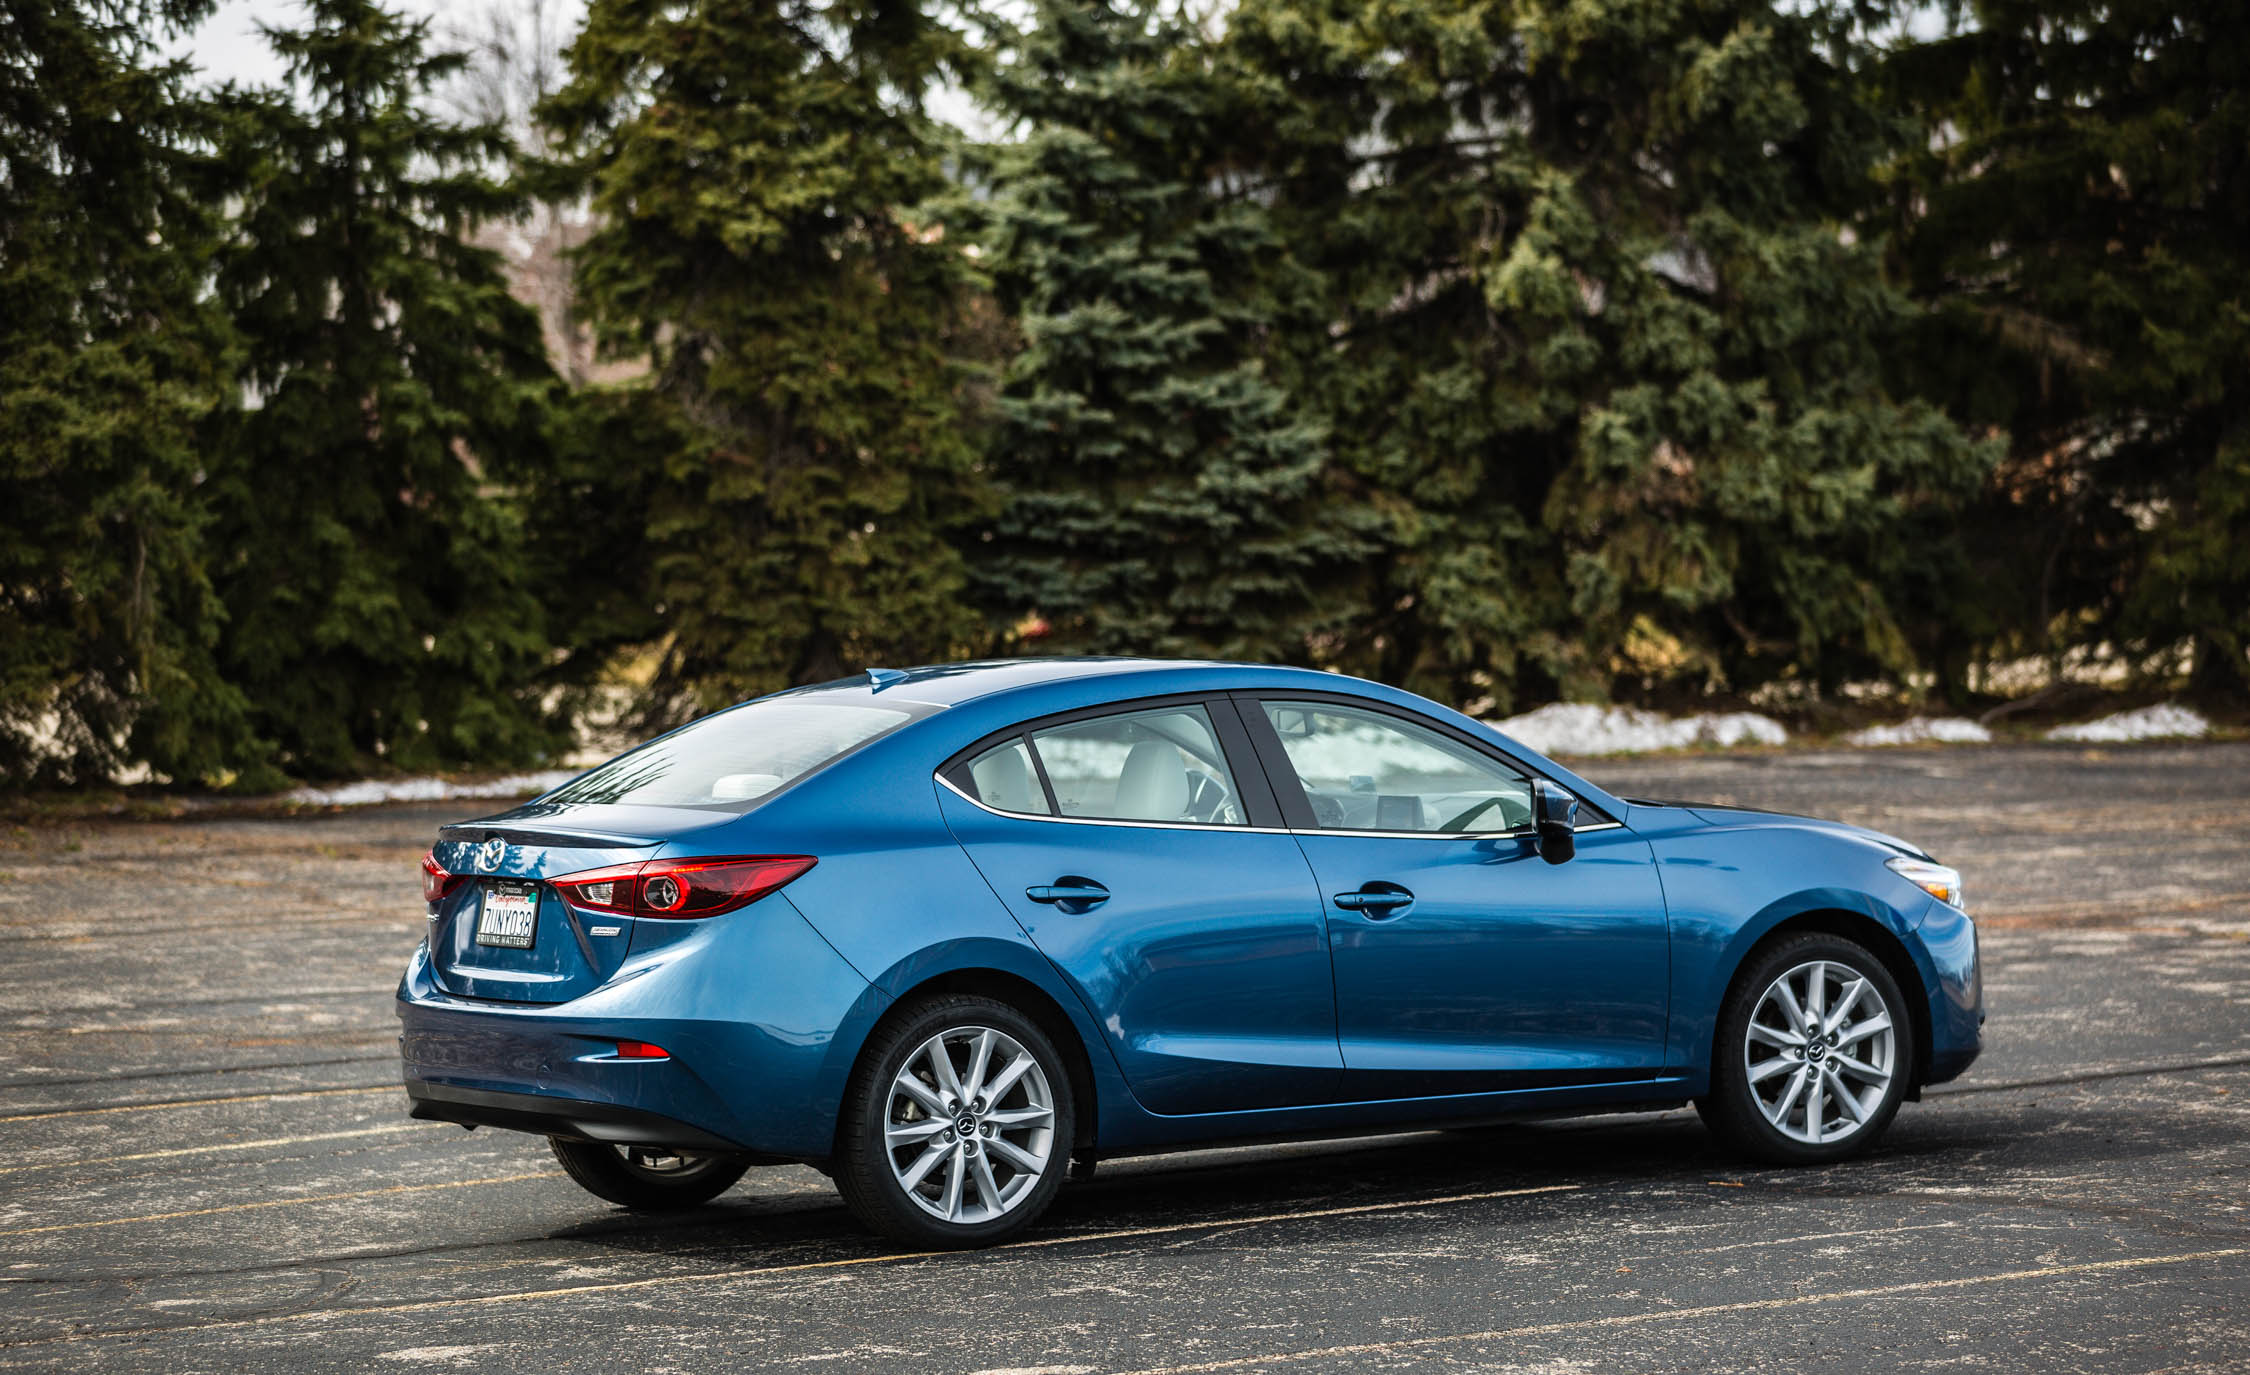 2017 Mazda 3 Grand Touring Sedan Exterior Side And Rear (Photo 8 of 51)